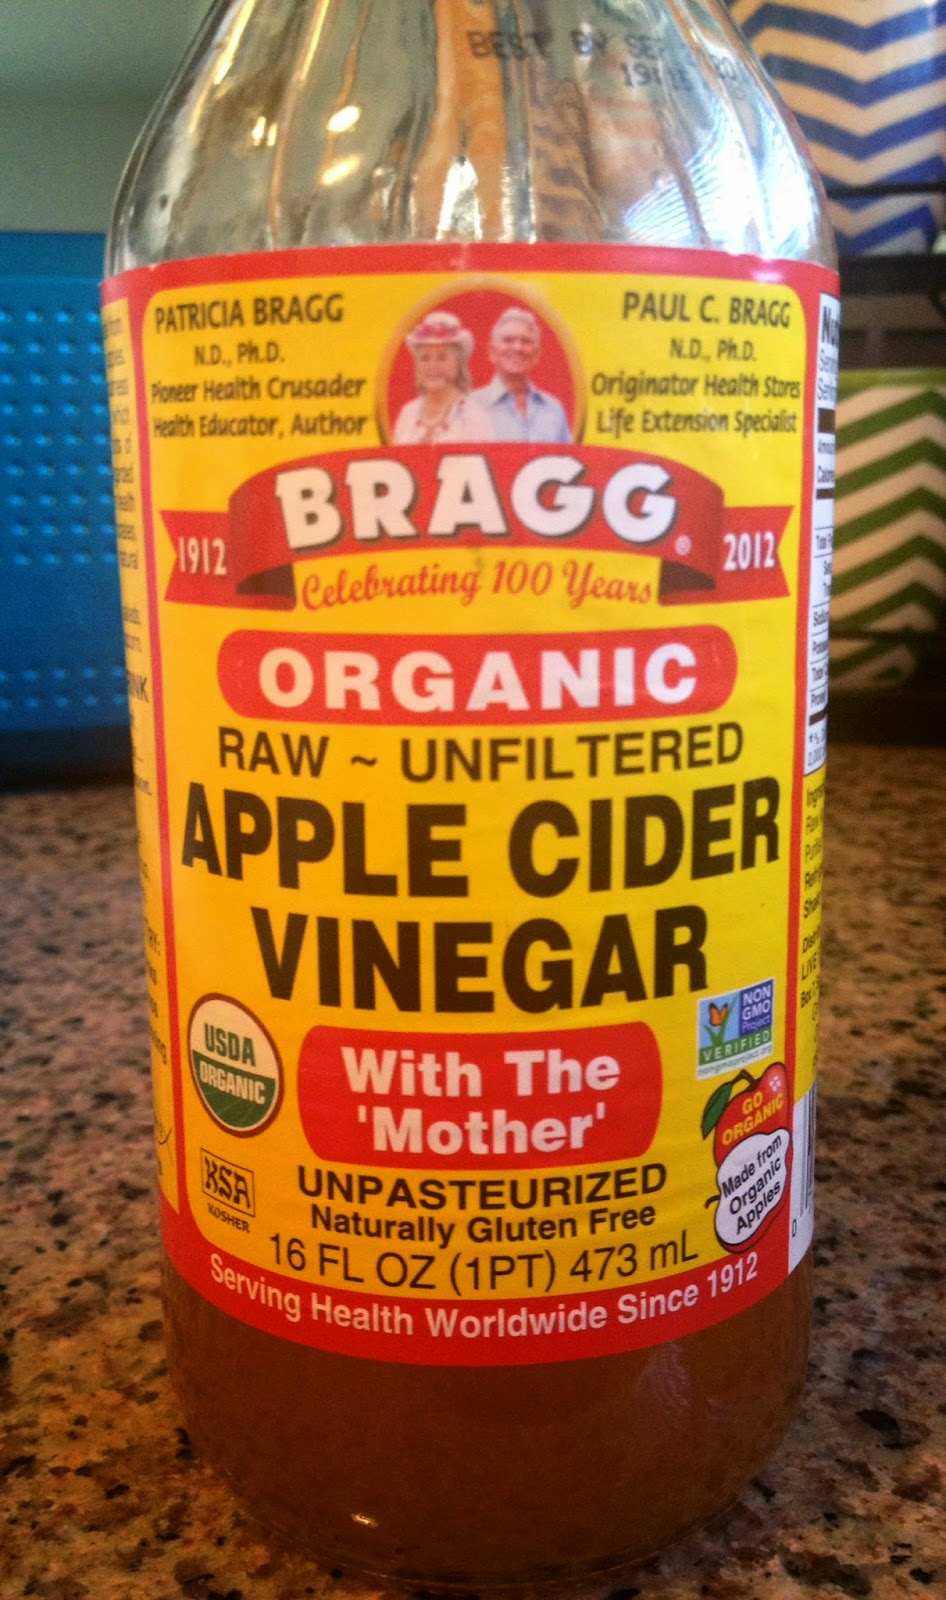 http://bragg.com/products/bragg-organic-apple-cider-vinegar.html